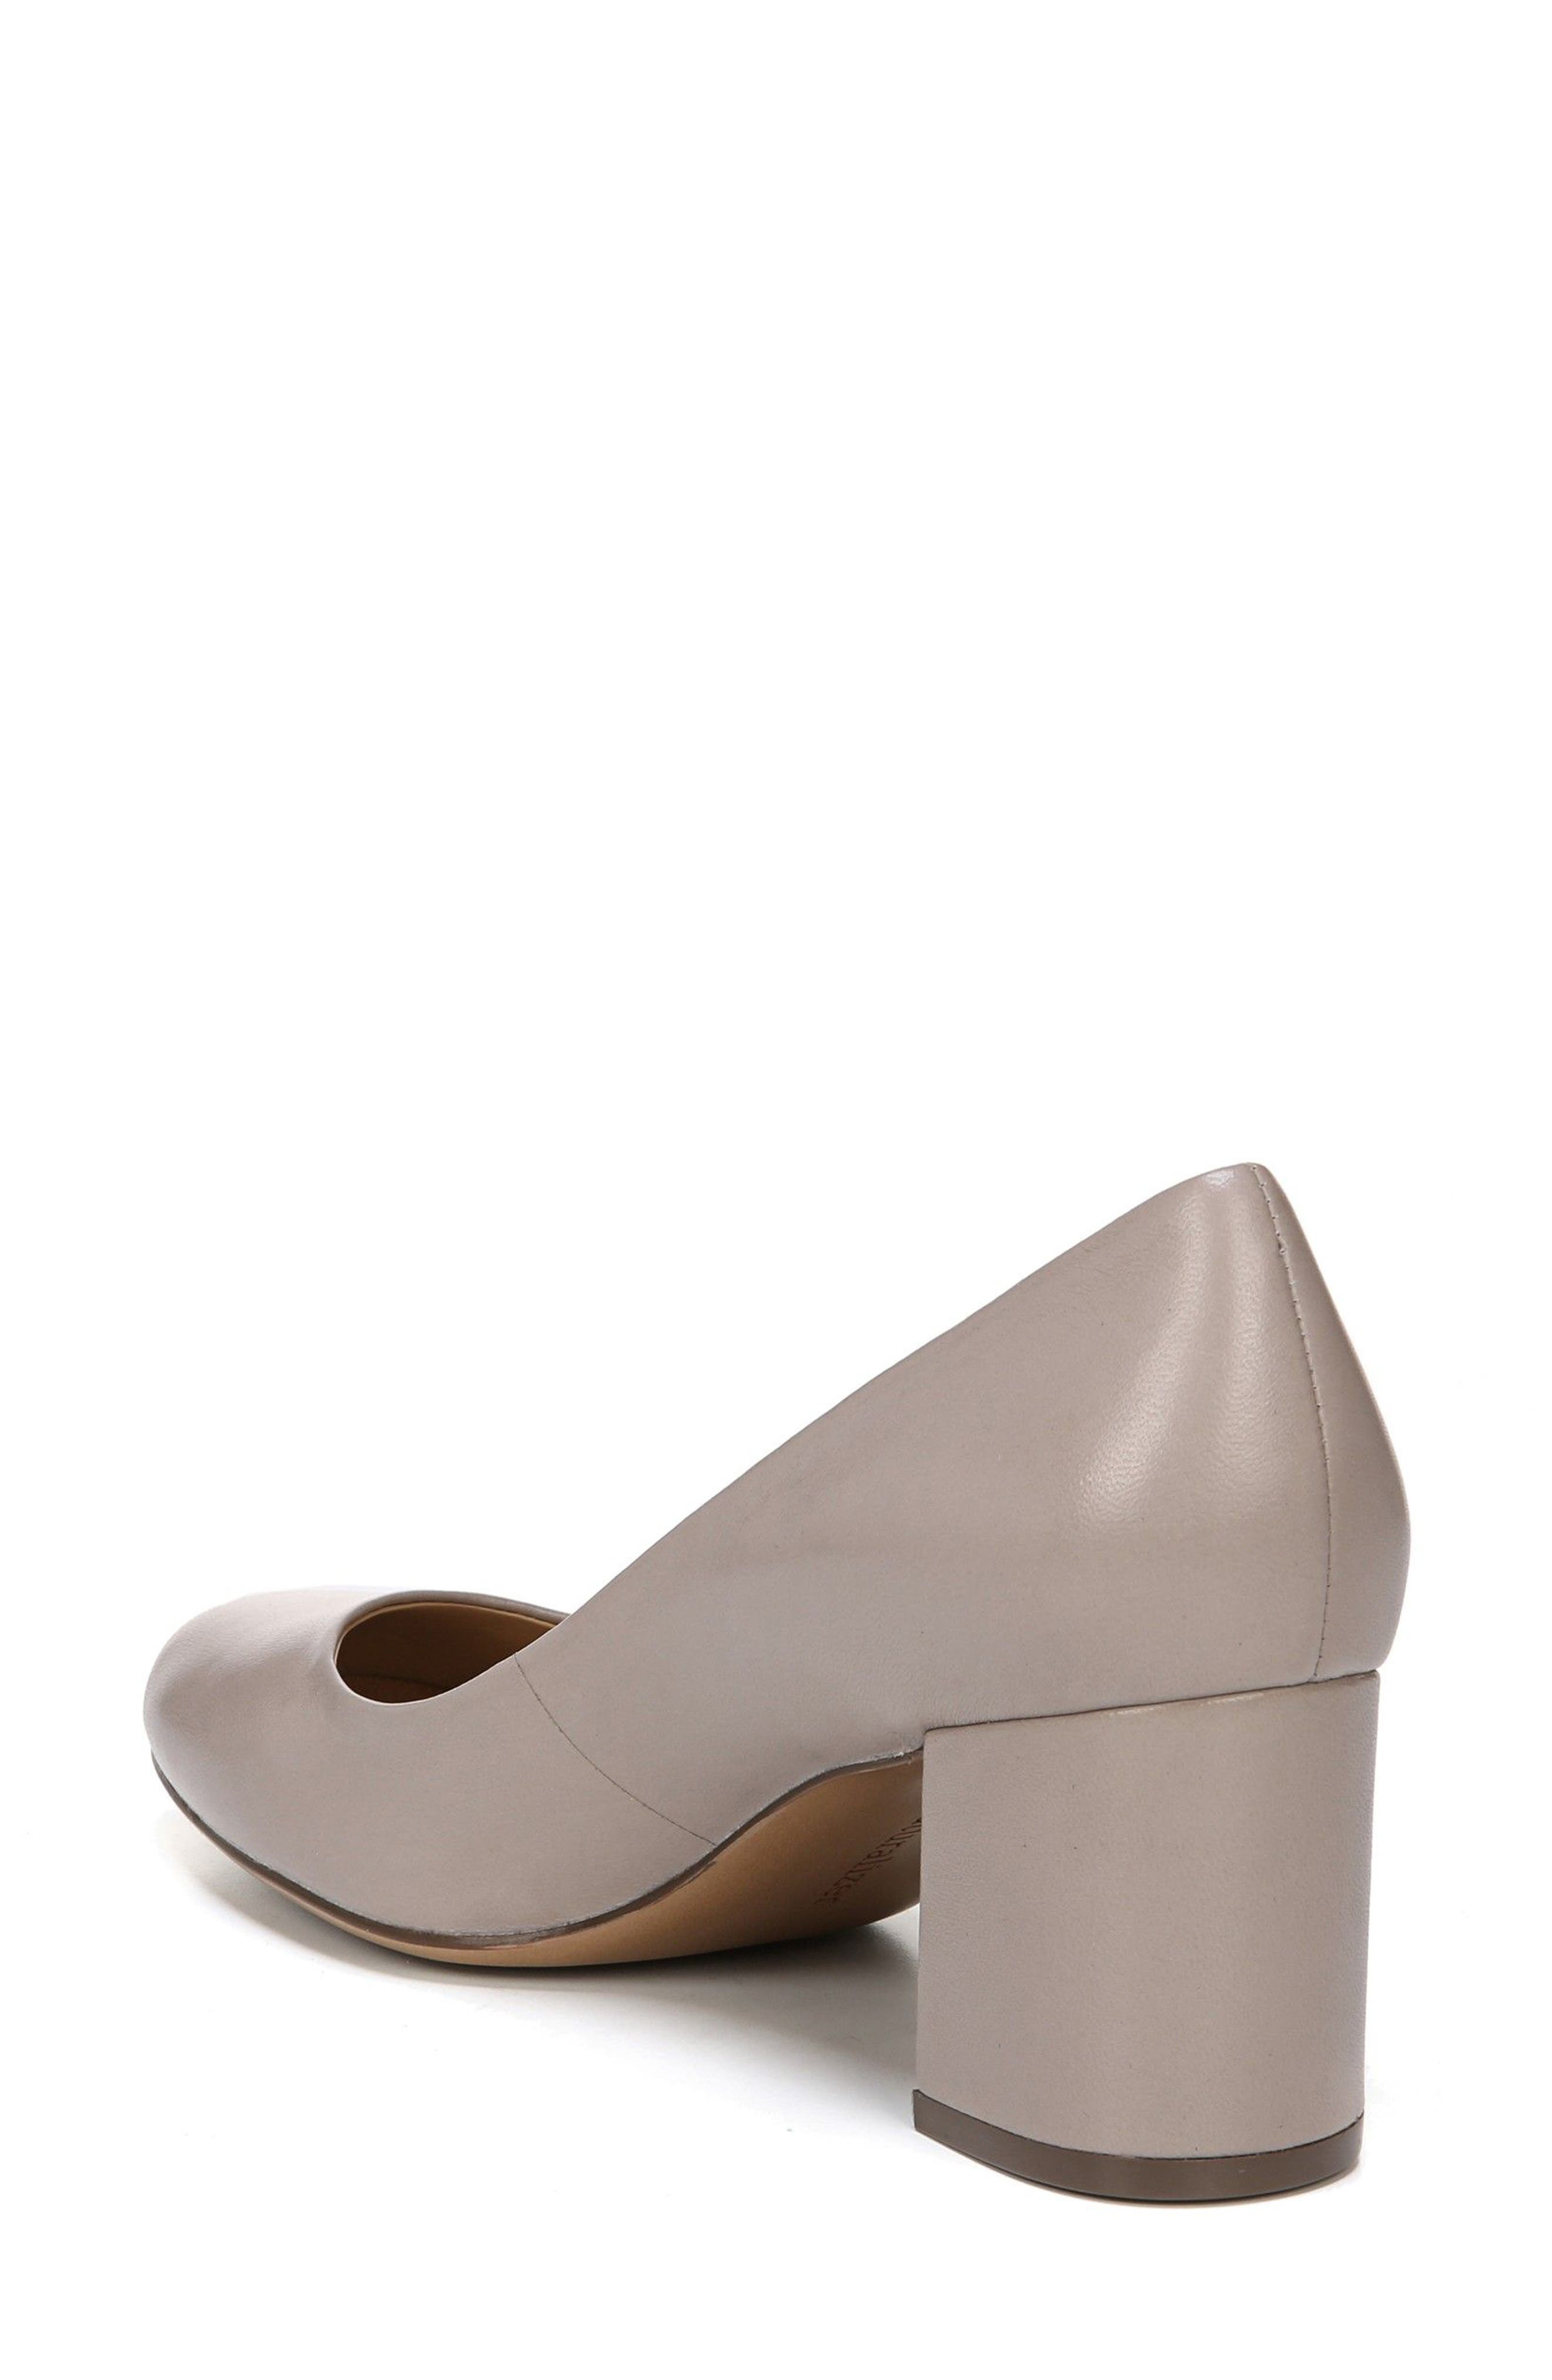 Whitney Pump,                             Alternate thumbnail 2, color,                             Dove Leather